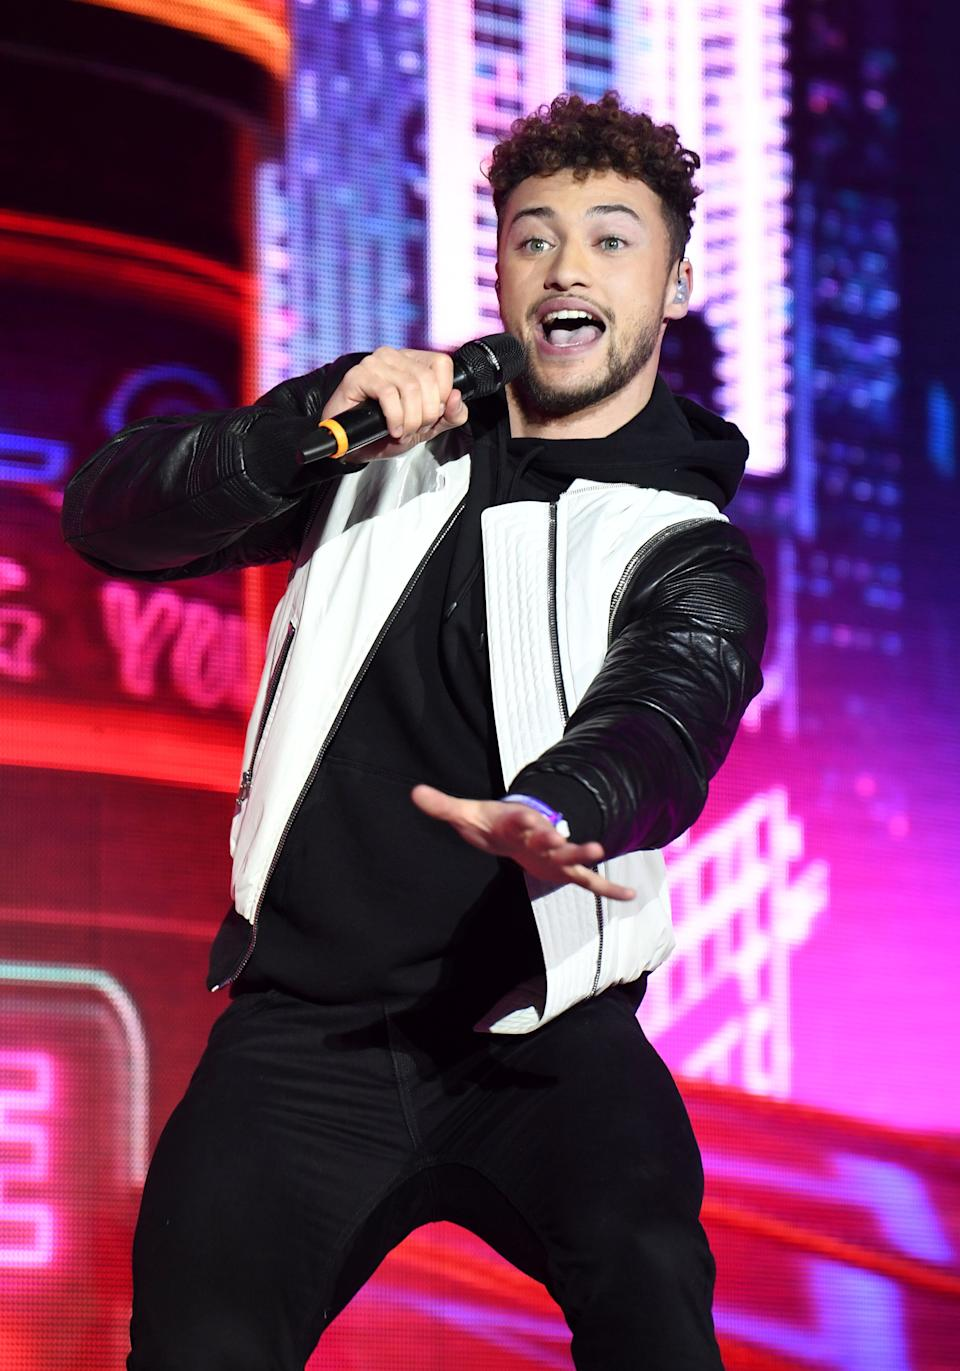 <strong>Known for:</strong> Winning X Factor 2017 as part of Rak-Su<br /><br />The singer was linked to a spot on the I'm A Celeb line-up just weeks after he split from girlfriend, Love Island star Gabby Allen.